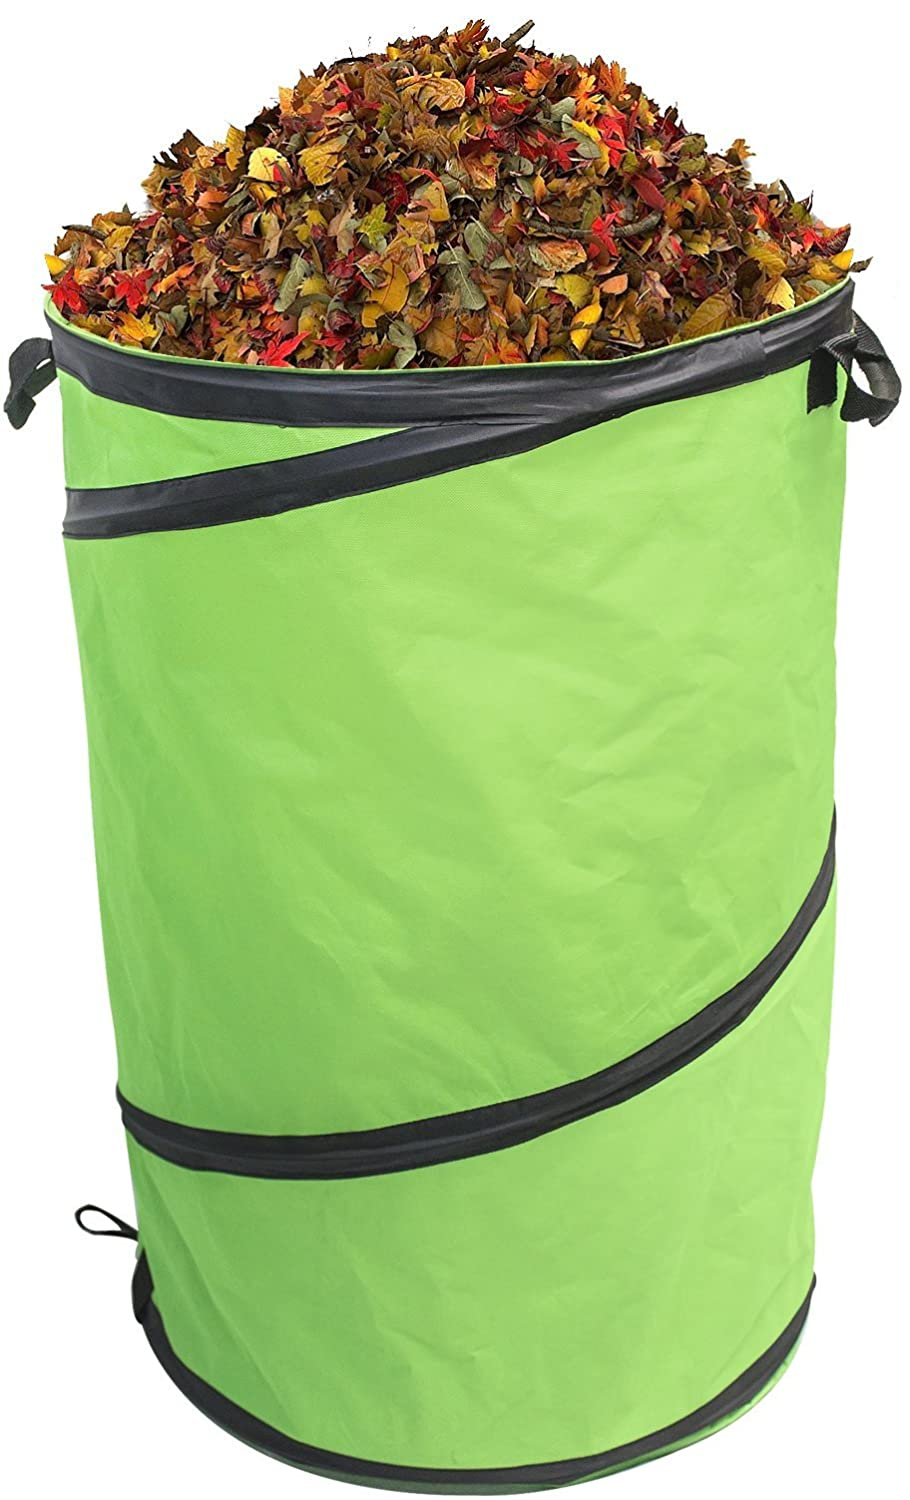 Sorbus GRDN-BAG 30 Gallon Collapsible Gardening Bag ggi interntational